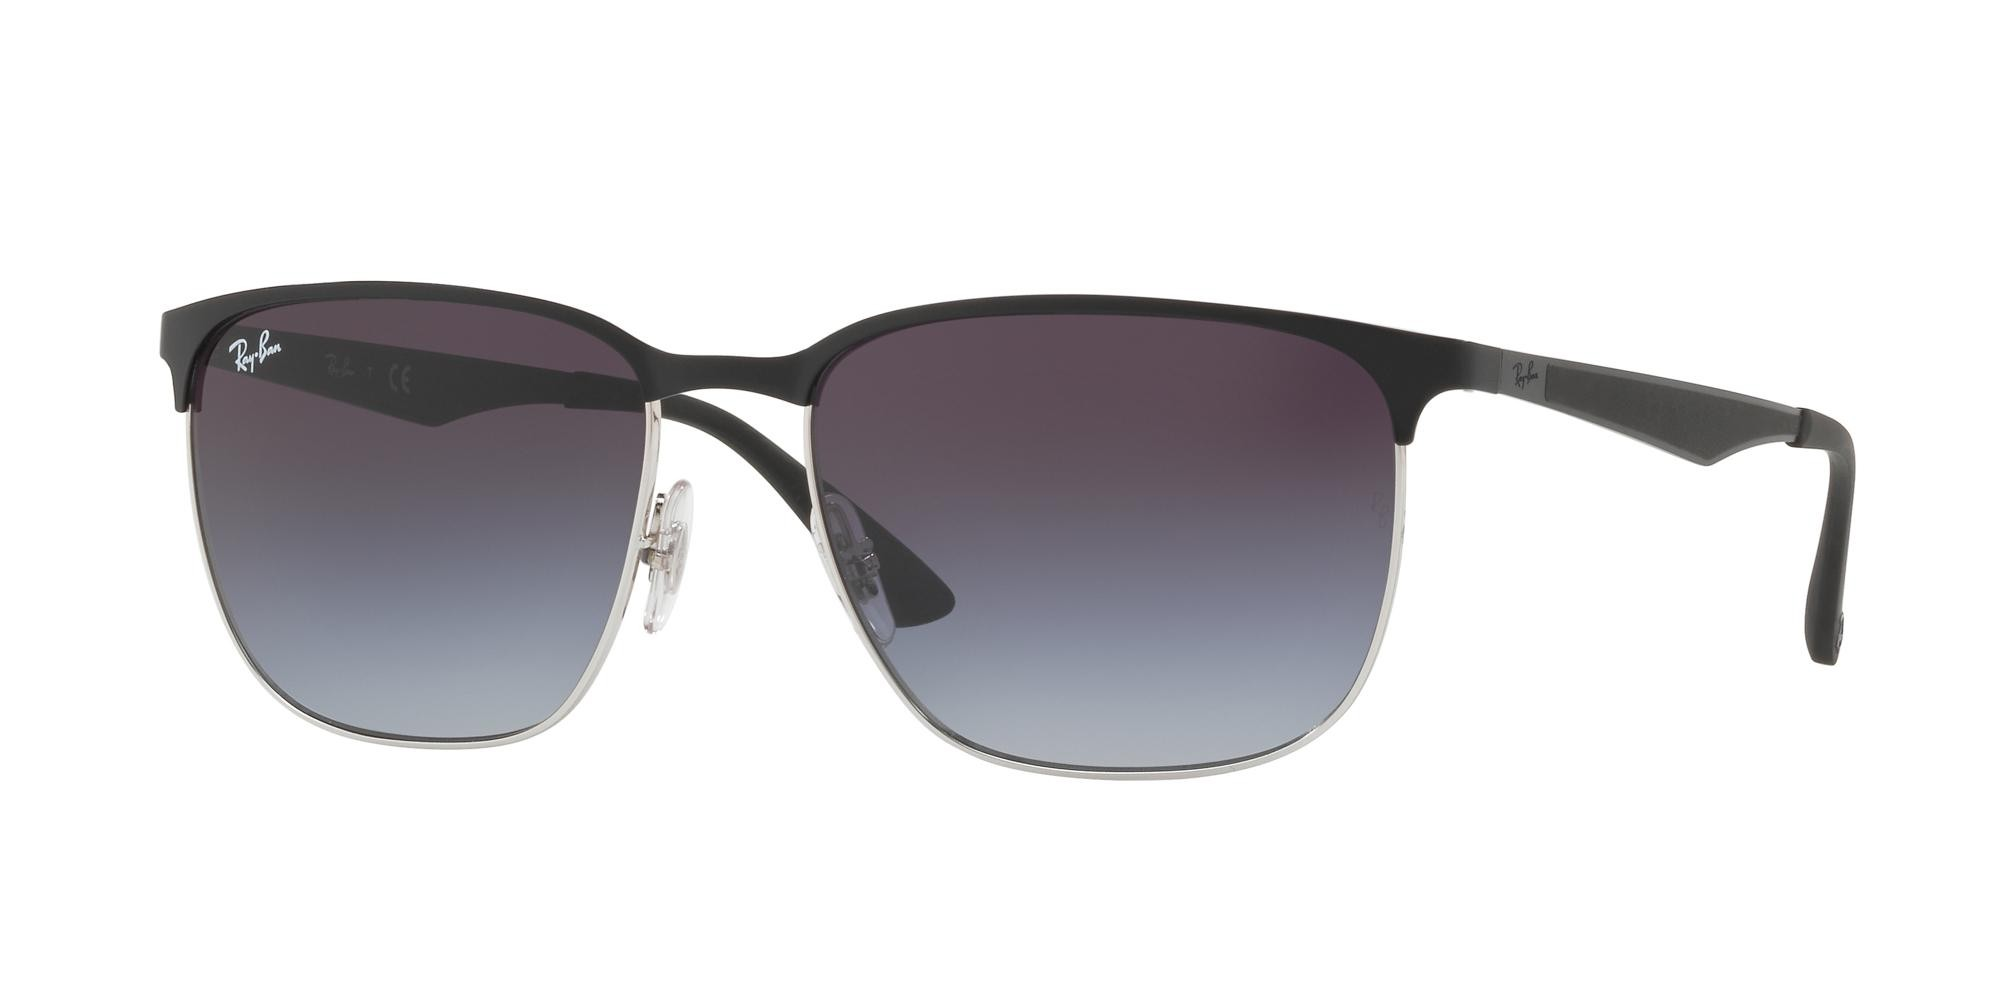 Ray-Ban sunglasses RB 3569